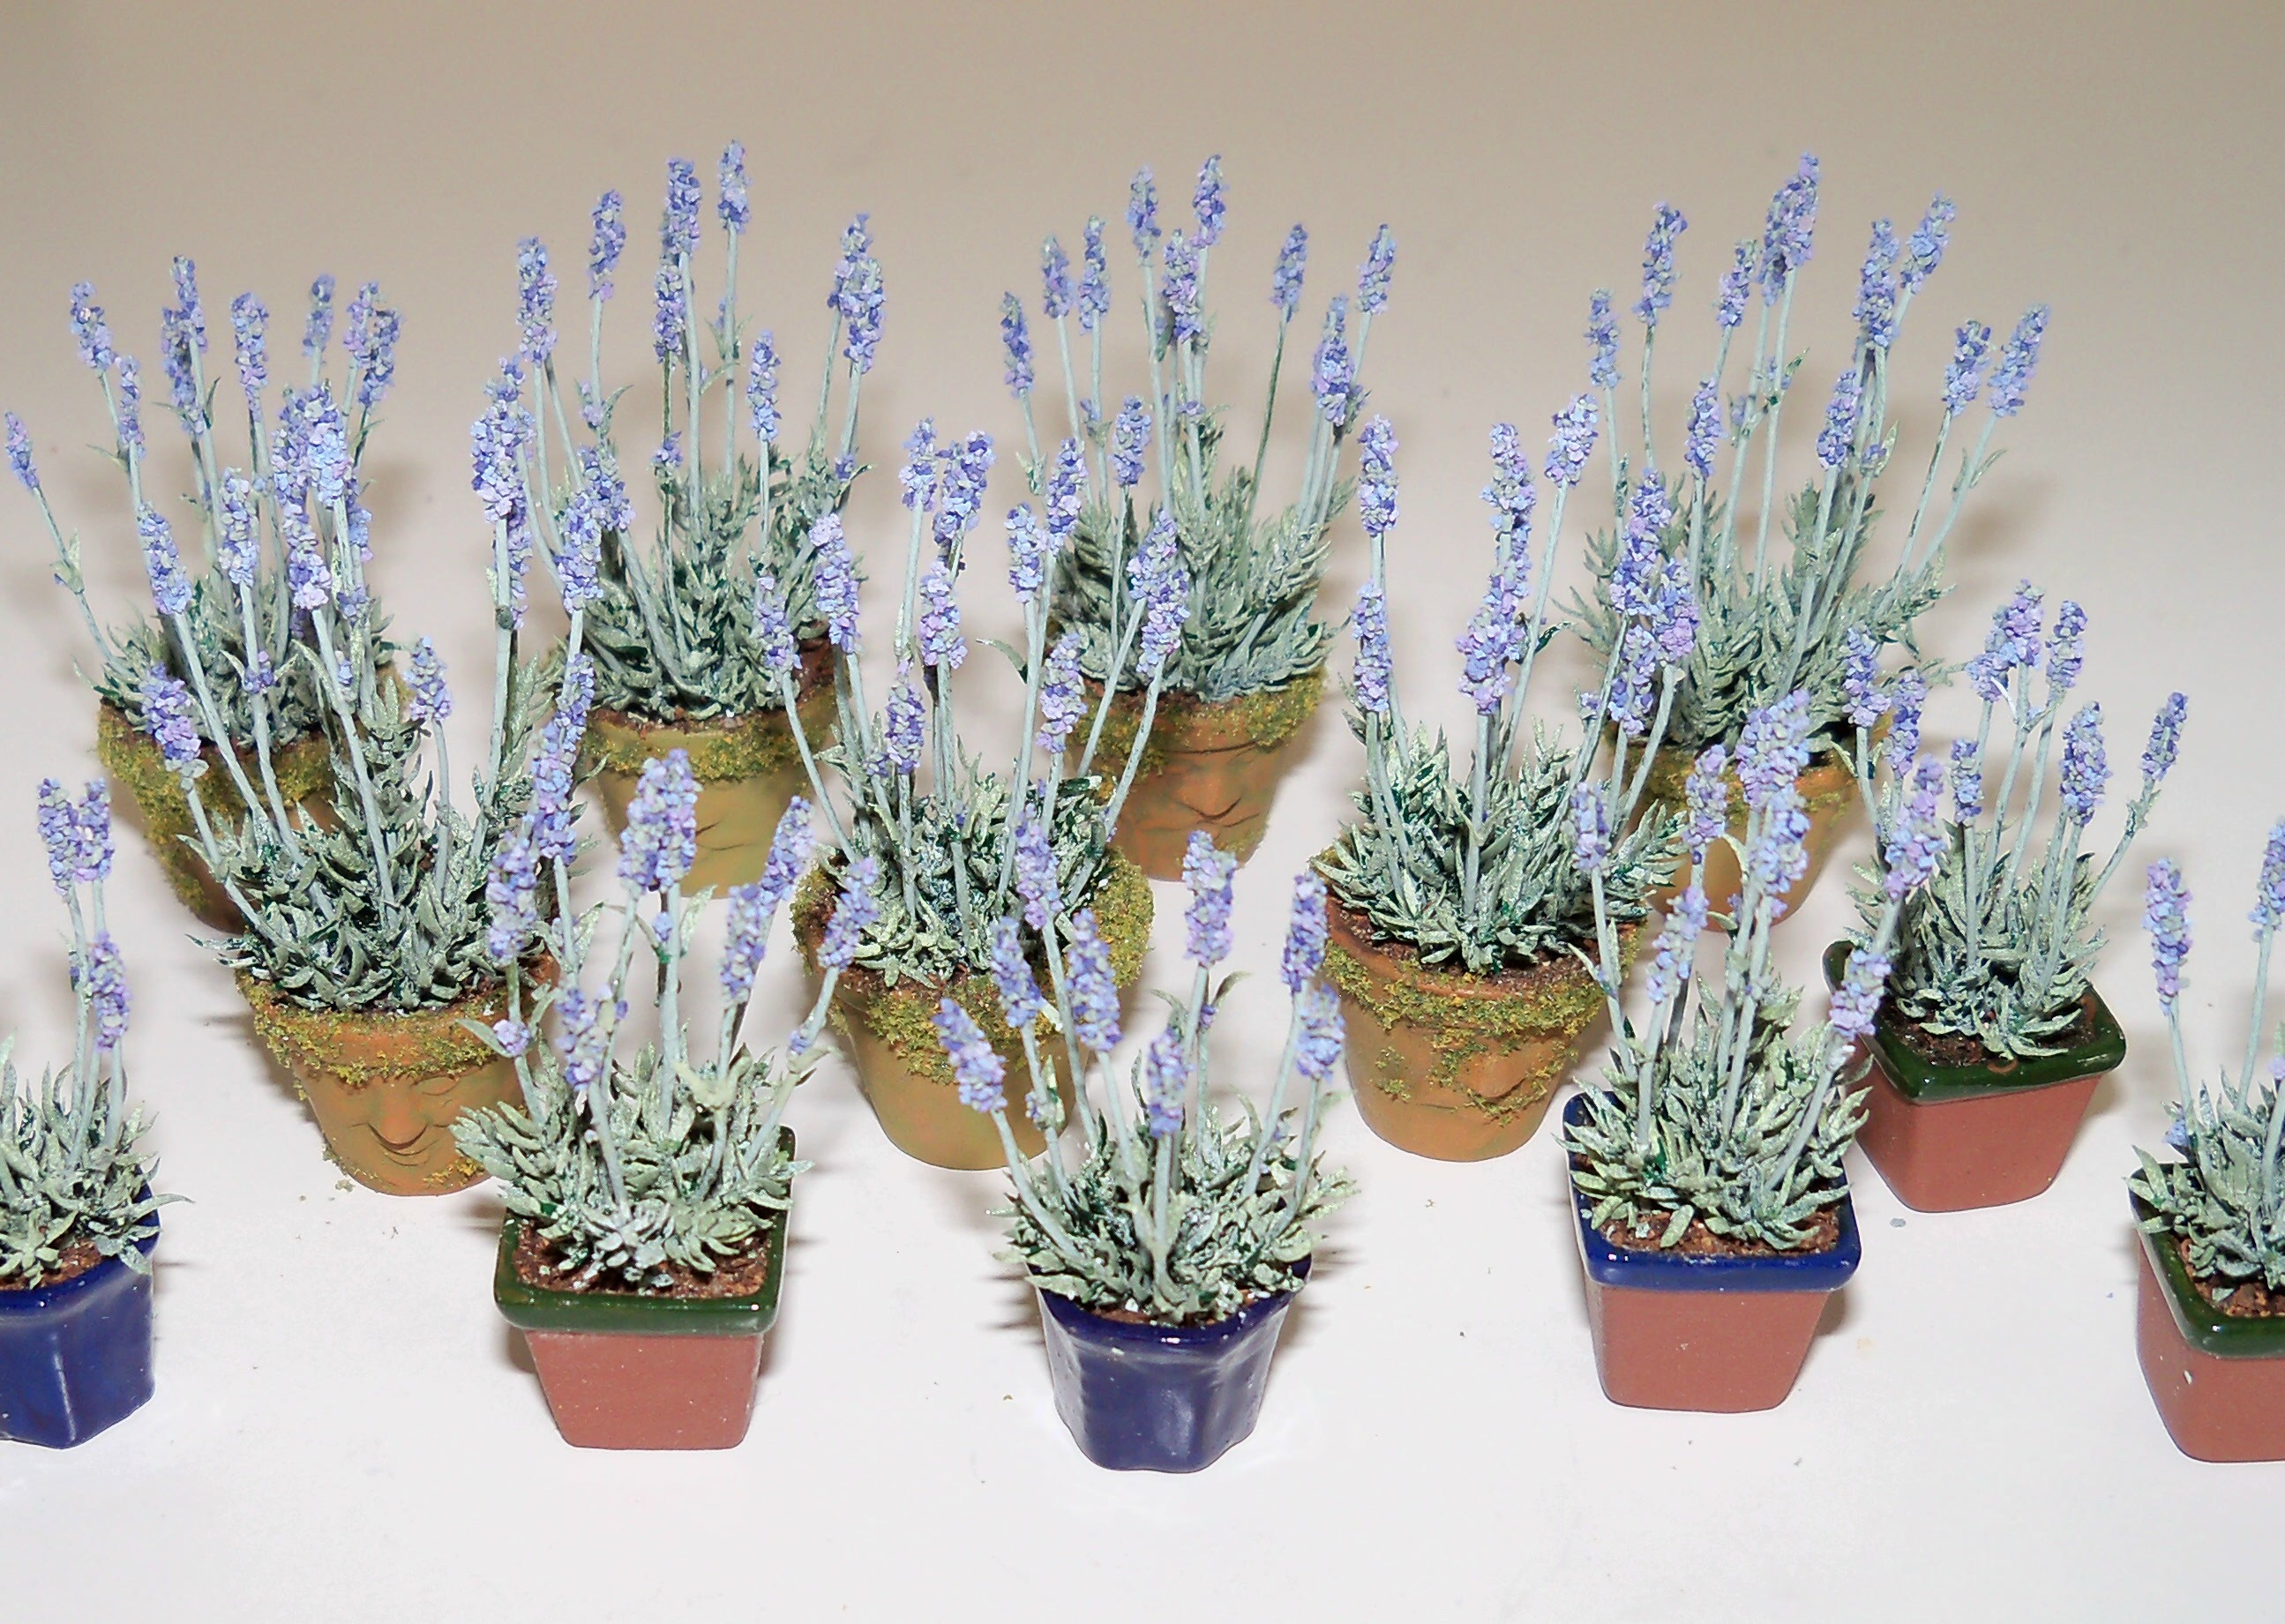 Lavender plants in assorted pots